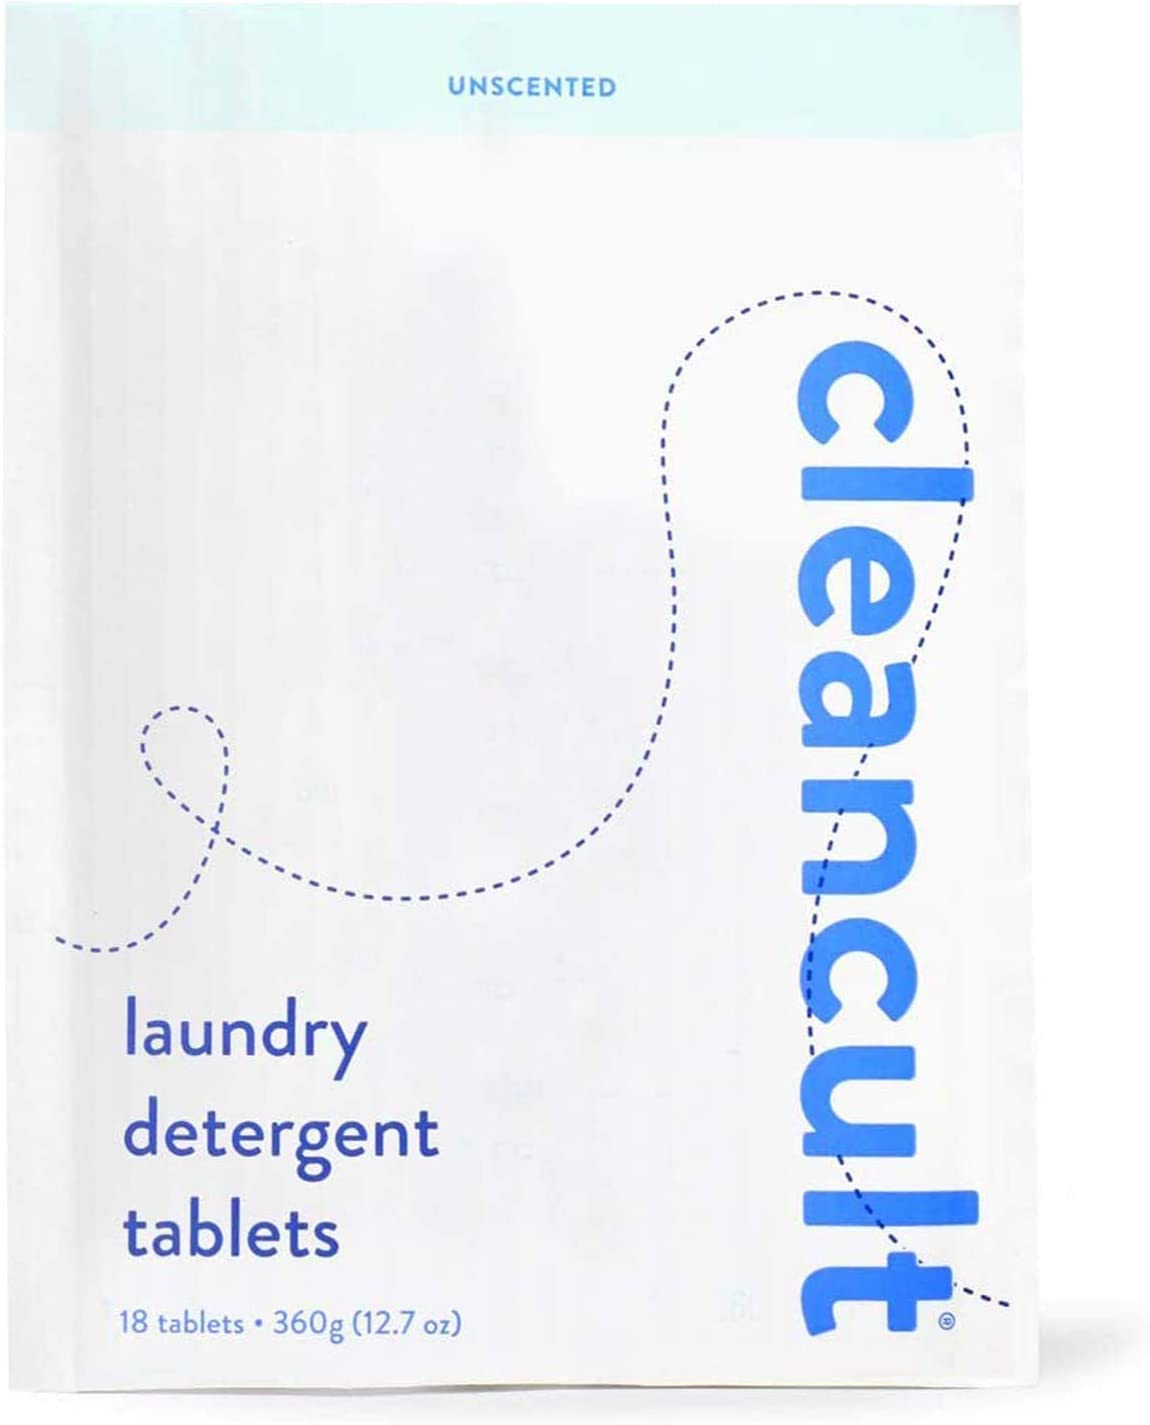 cleancult Laundry Detergent Tablet Refill | Biodegradable Eco Friendly Non Toxic Sensitive Skin Safe Natural Ingredients Reduced Waste Packaging, Unscented, 18 Count Refill Pouch